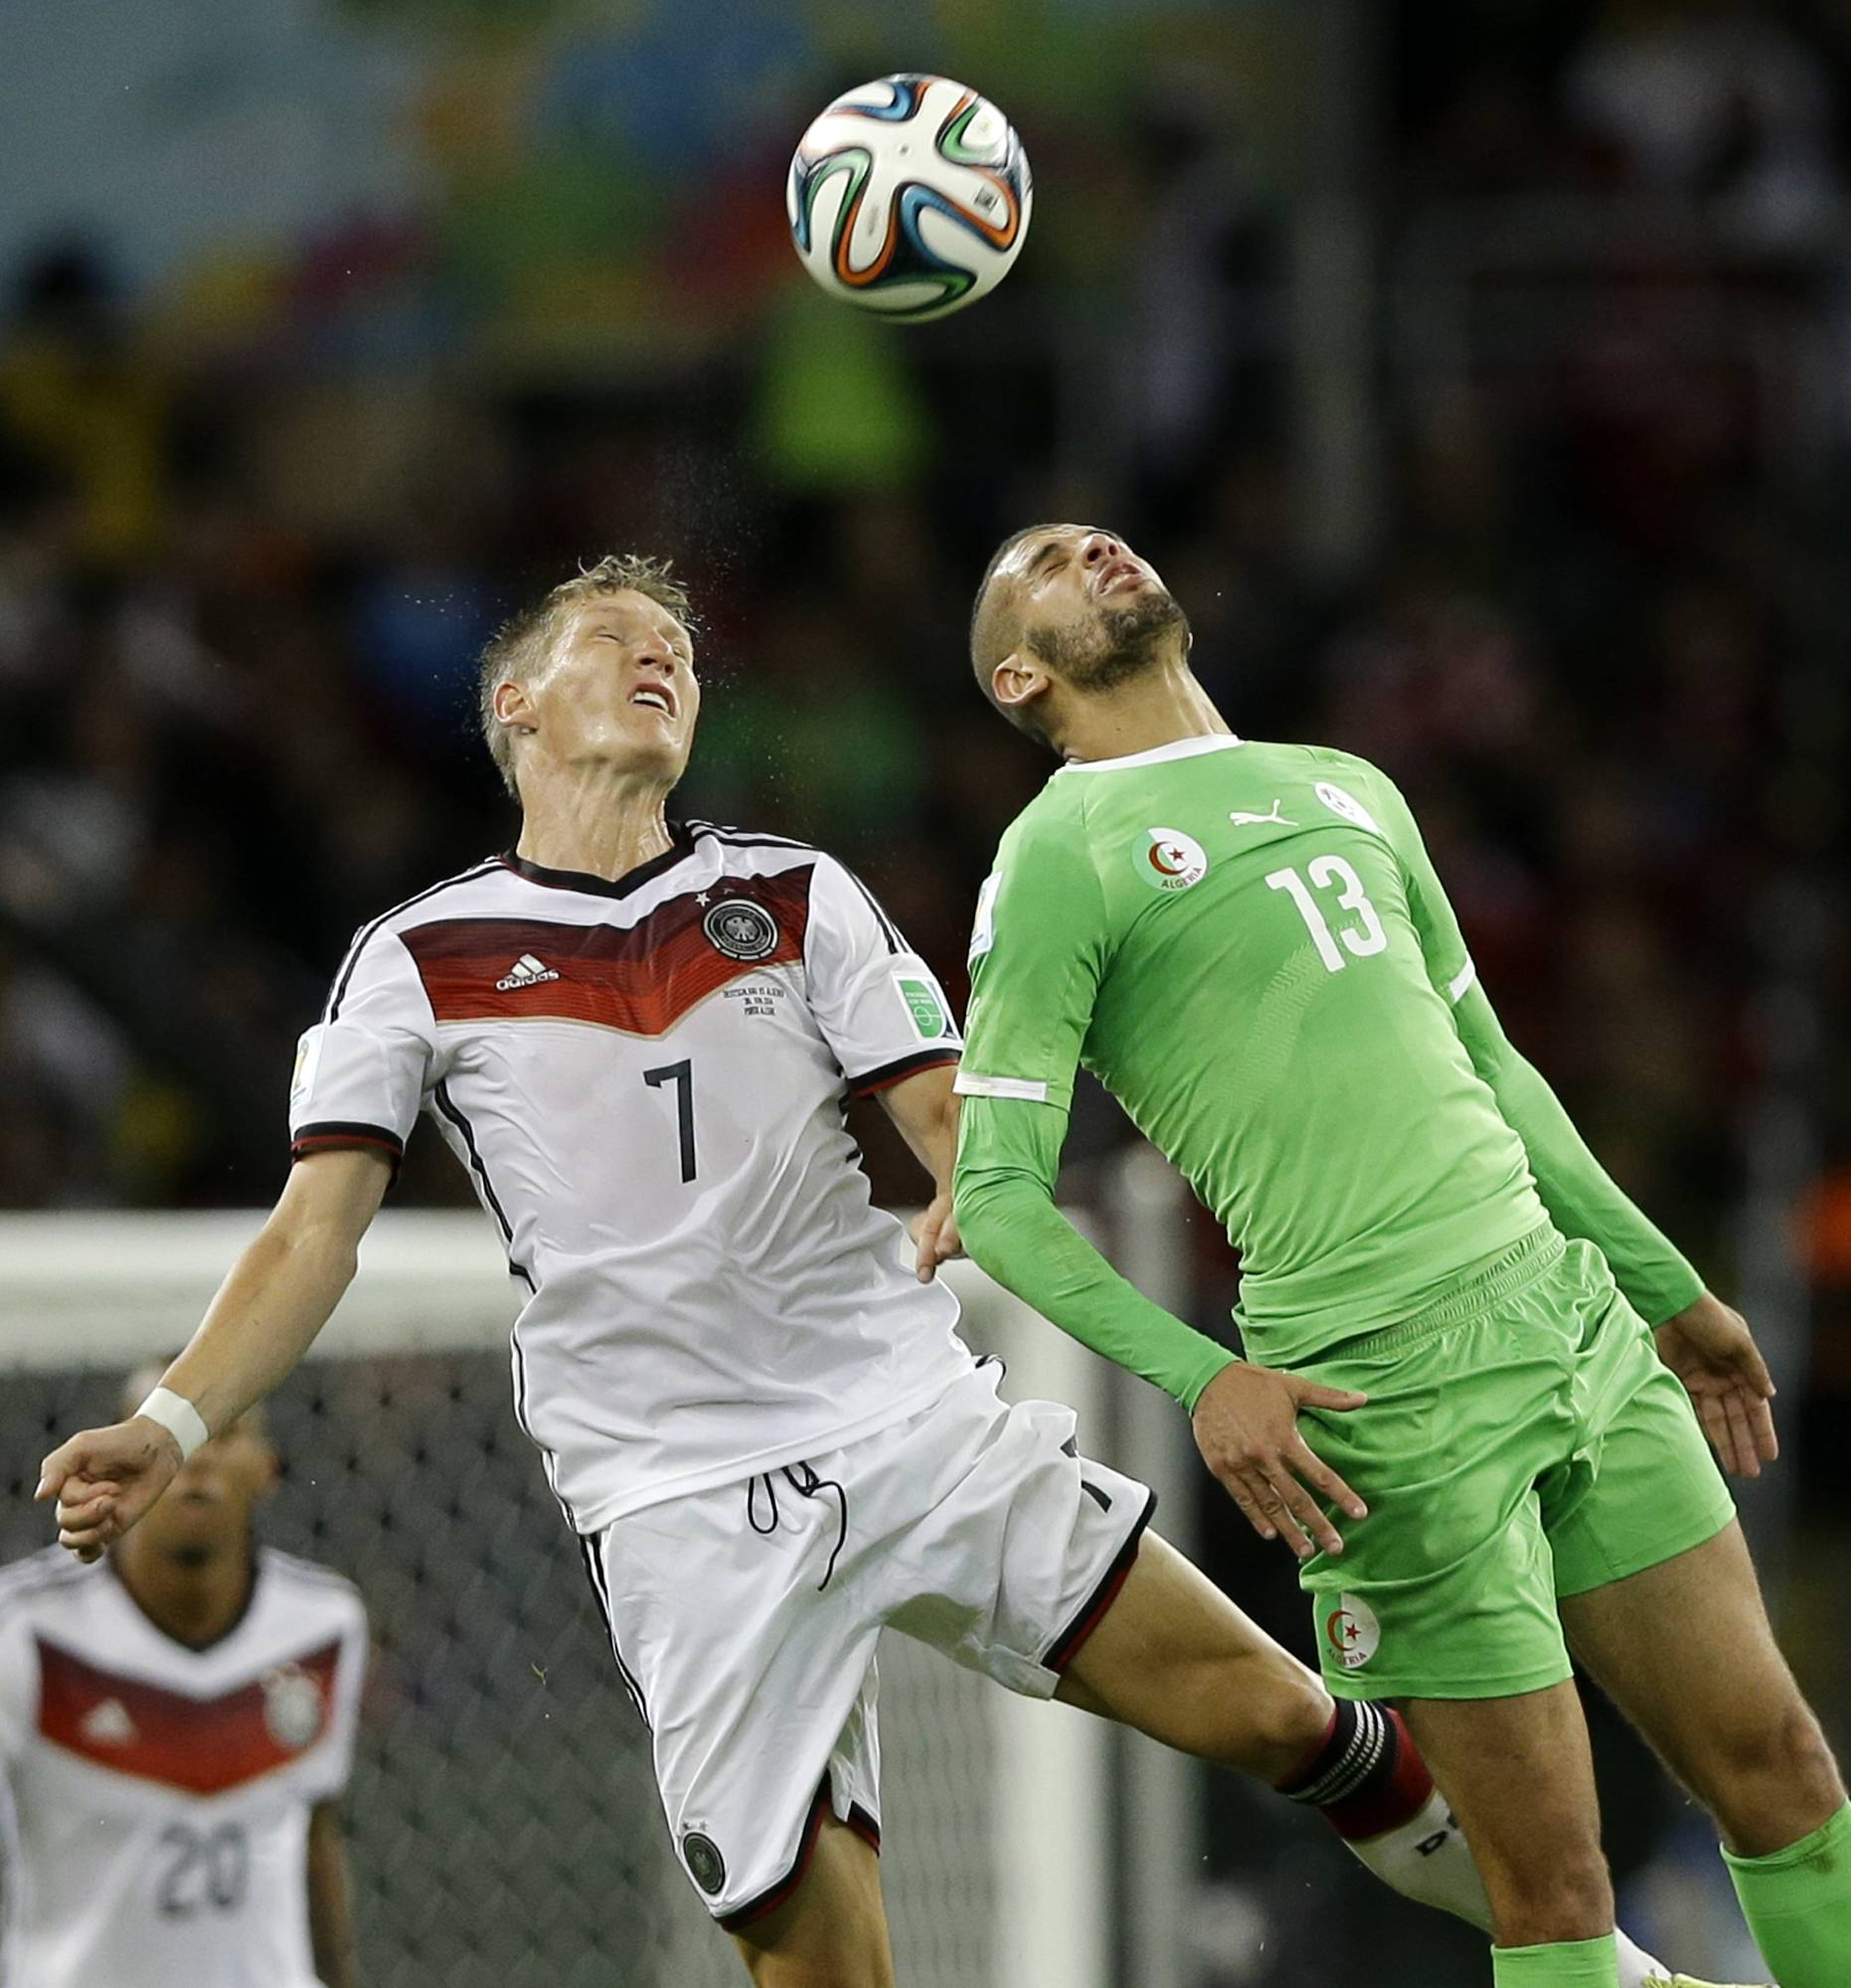 Germany's Bastian Schweinsteiger, left, heads the ball against Algeria's Islam Slimani during the World Cup round of 16 soccer match between Germany and Algeria at the Estadio Beira-Rio in Porto Alegre, Brazil, Monday, June 30, 2014.